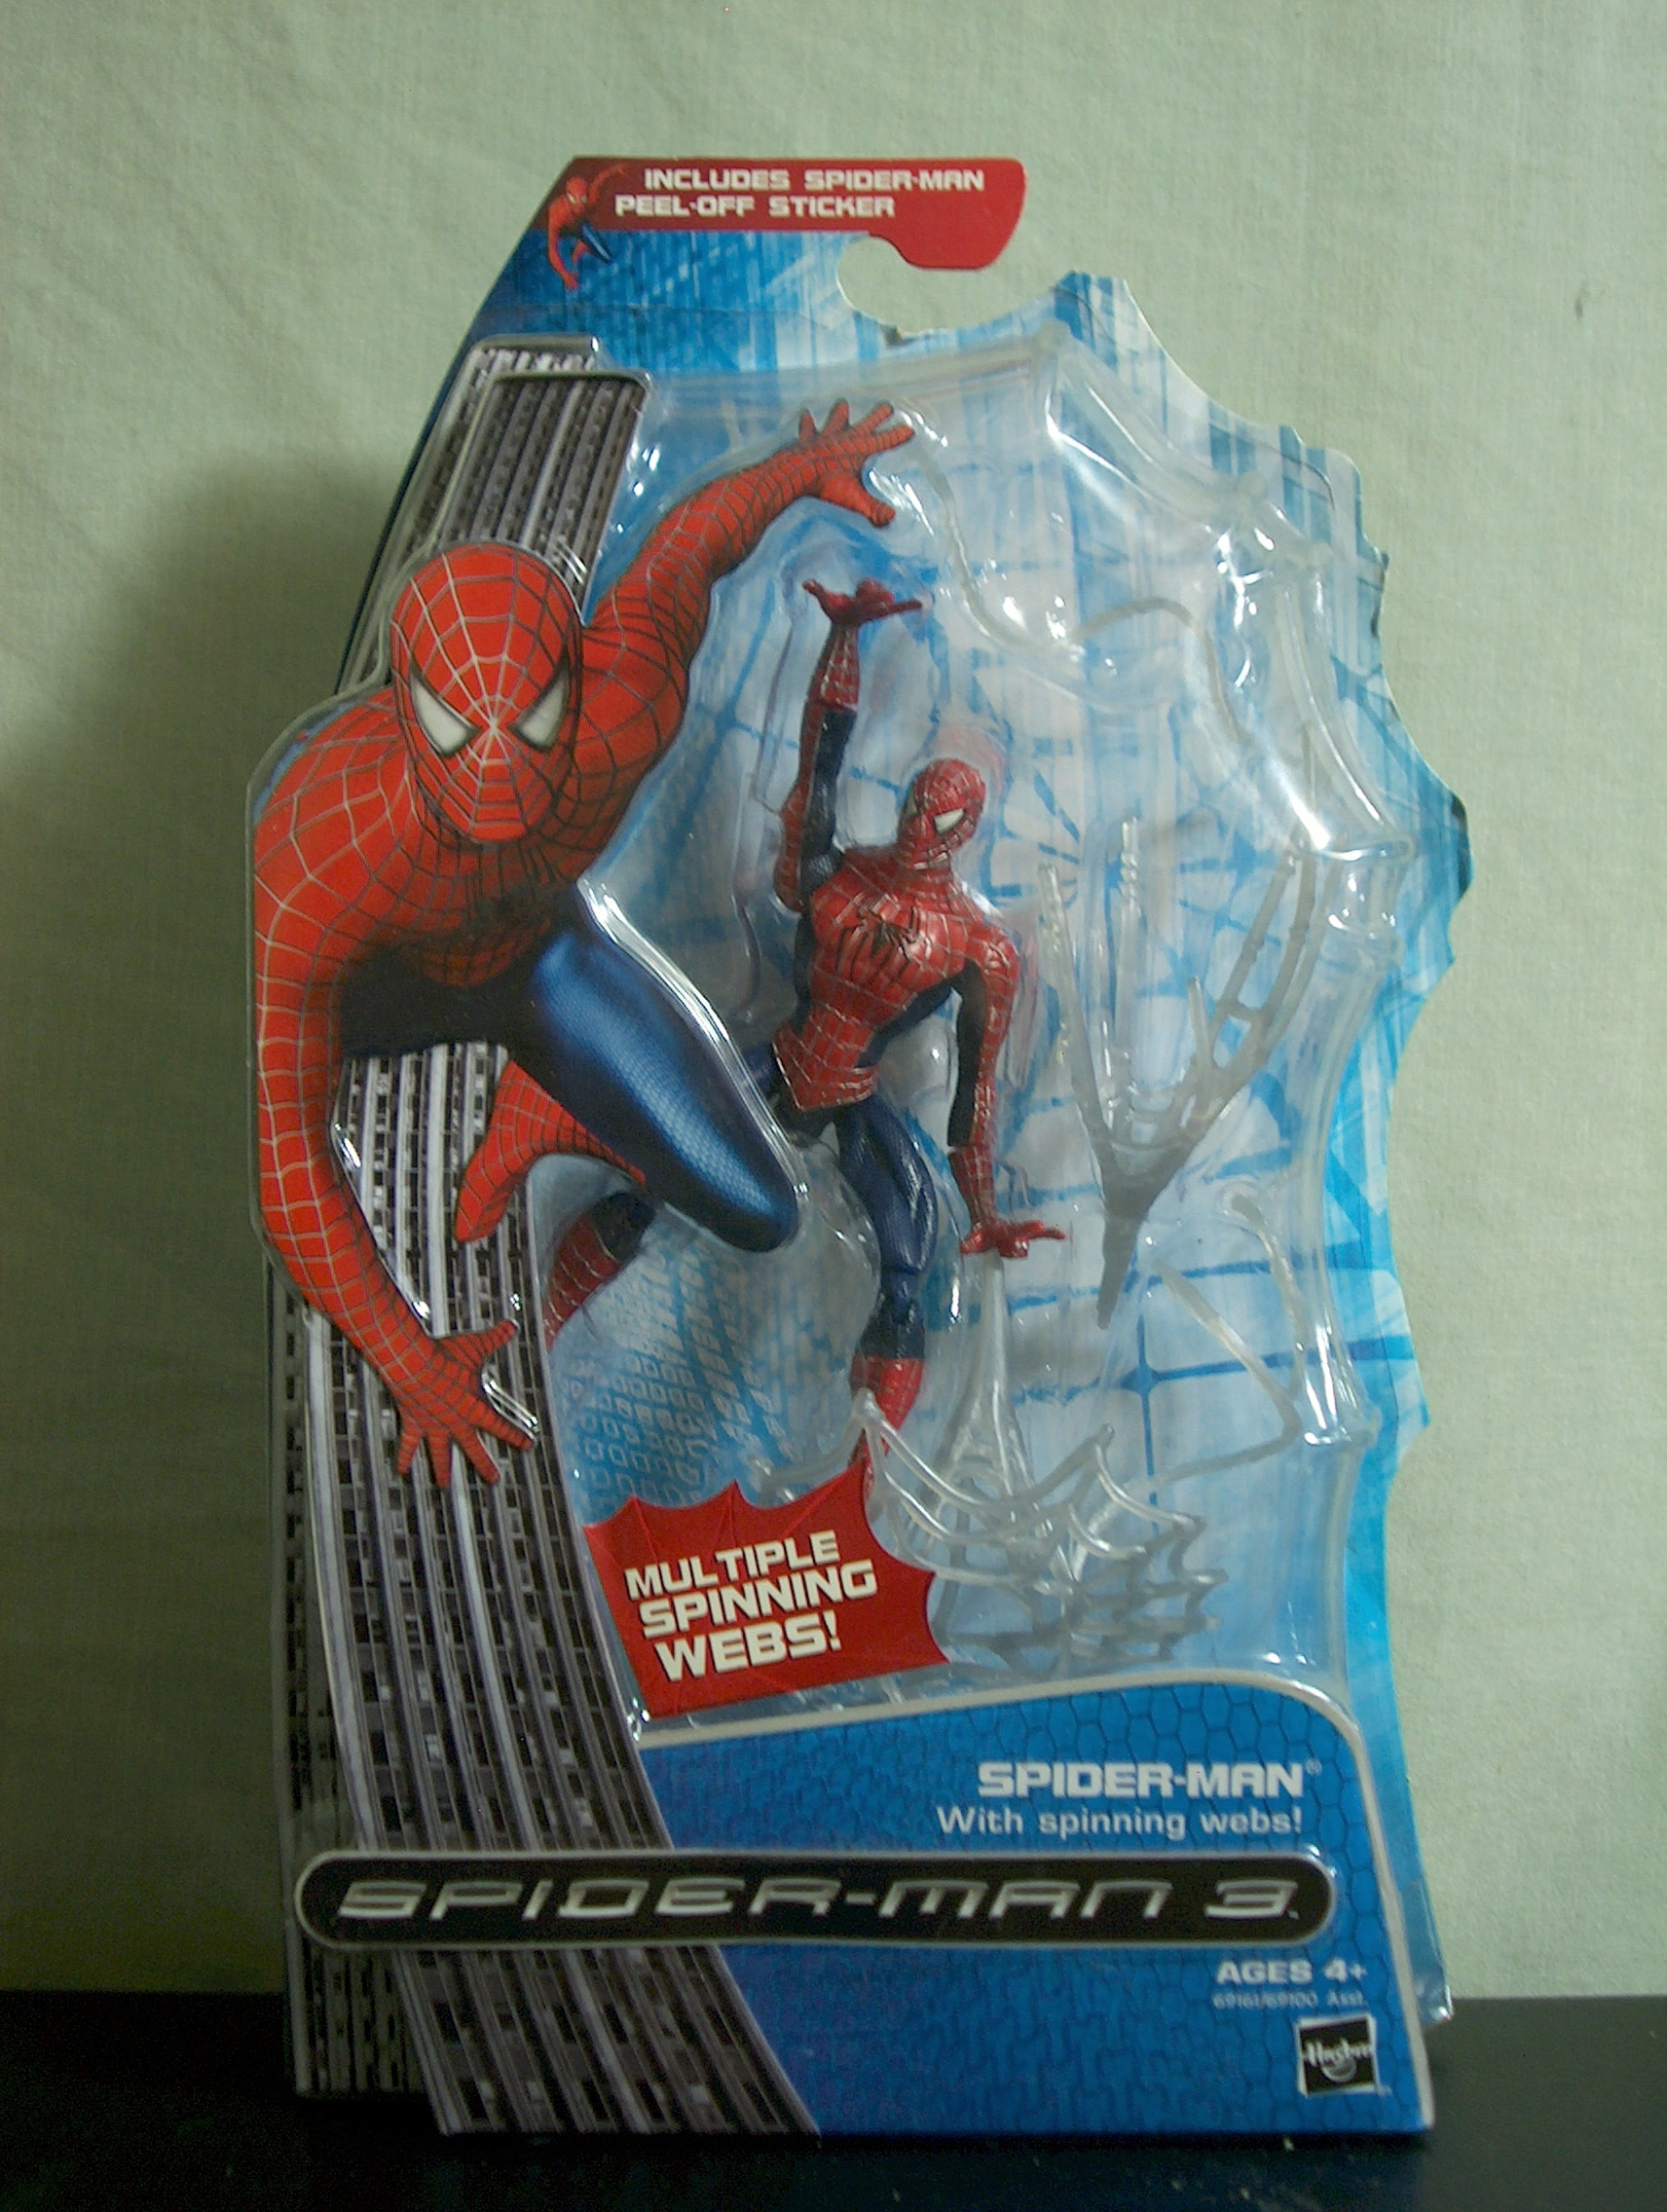 Spider-Man with Spinning Webs!